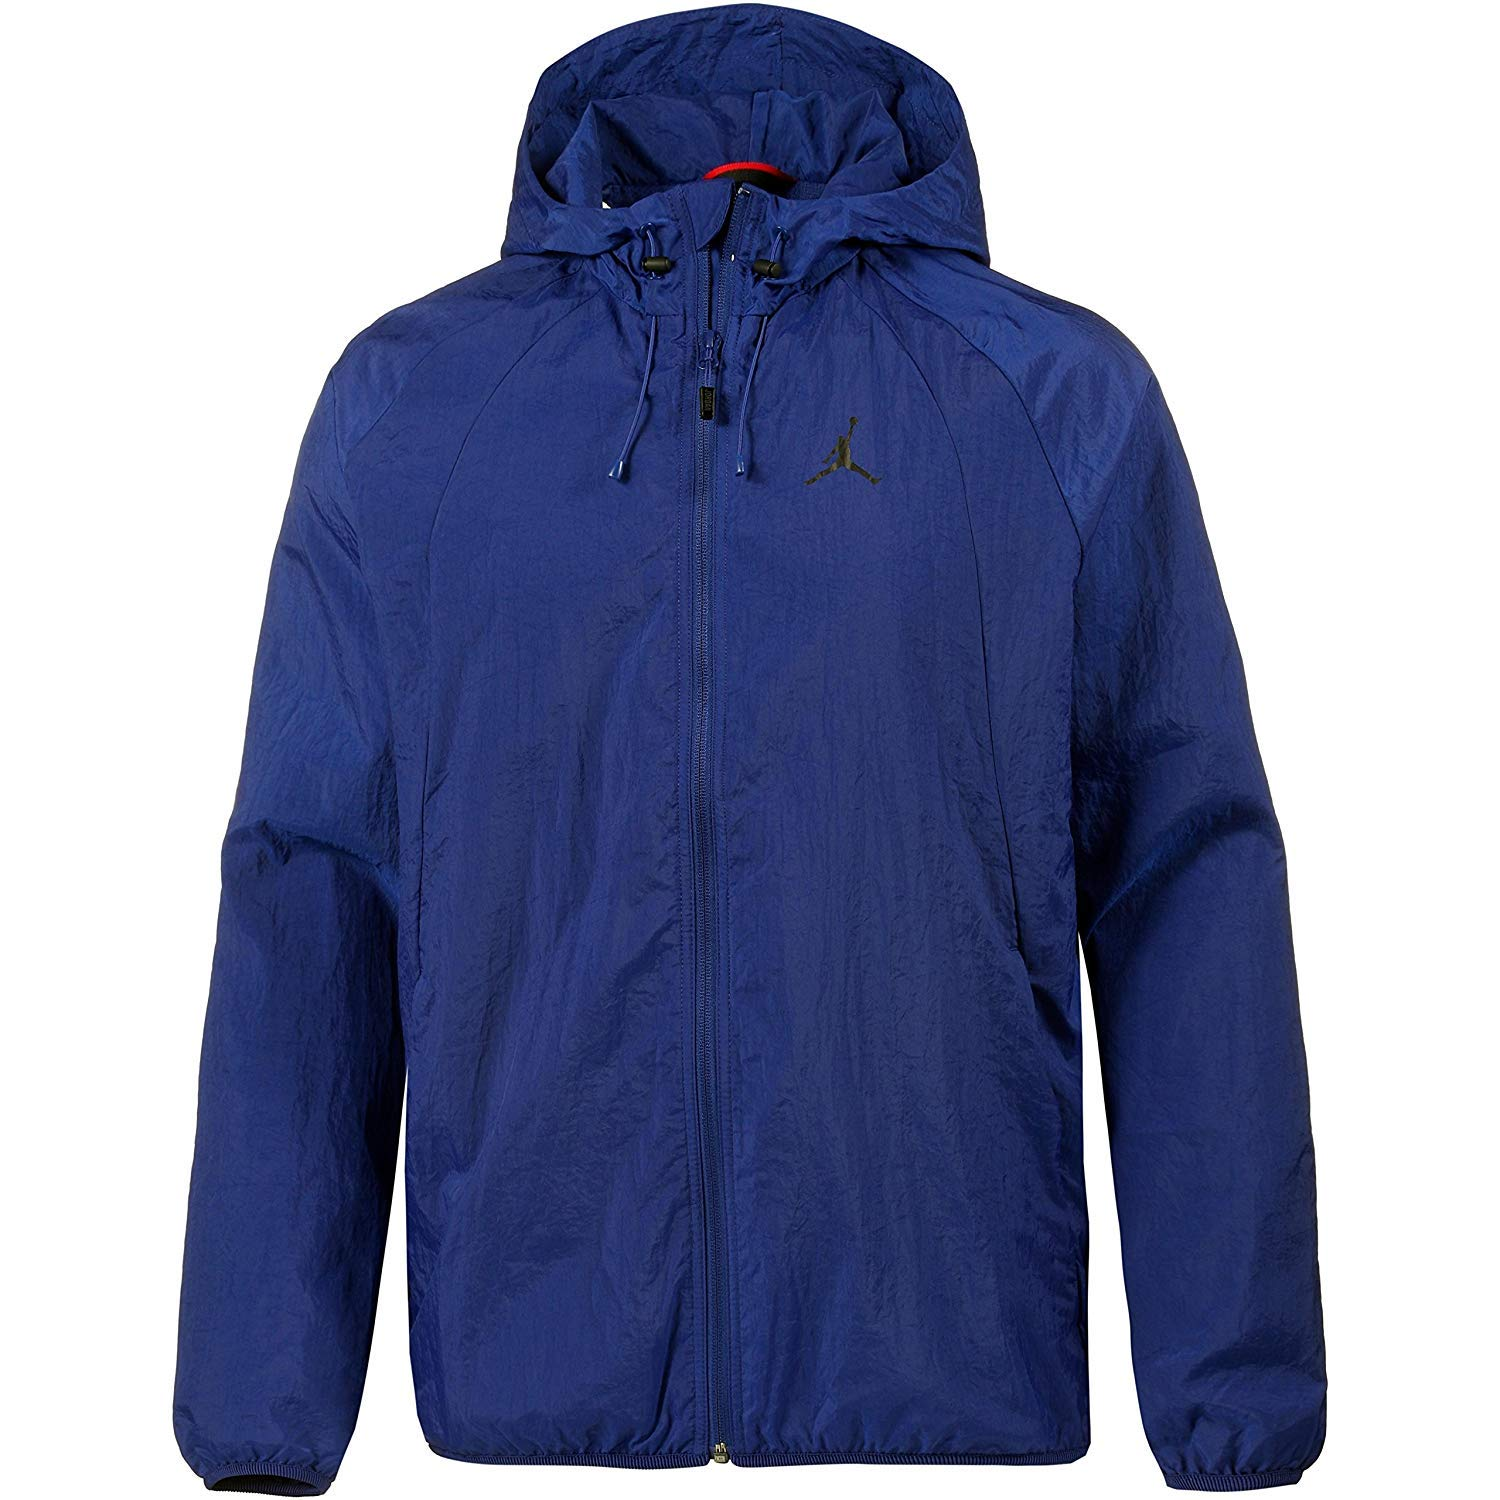 8e63e0af660 Jordan Lifestyle Wings Windbreaker Jacket Mens at Amazon Men's Clothing  store: